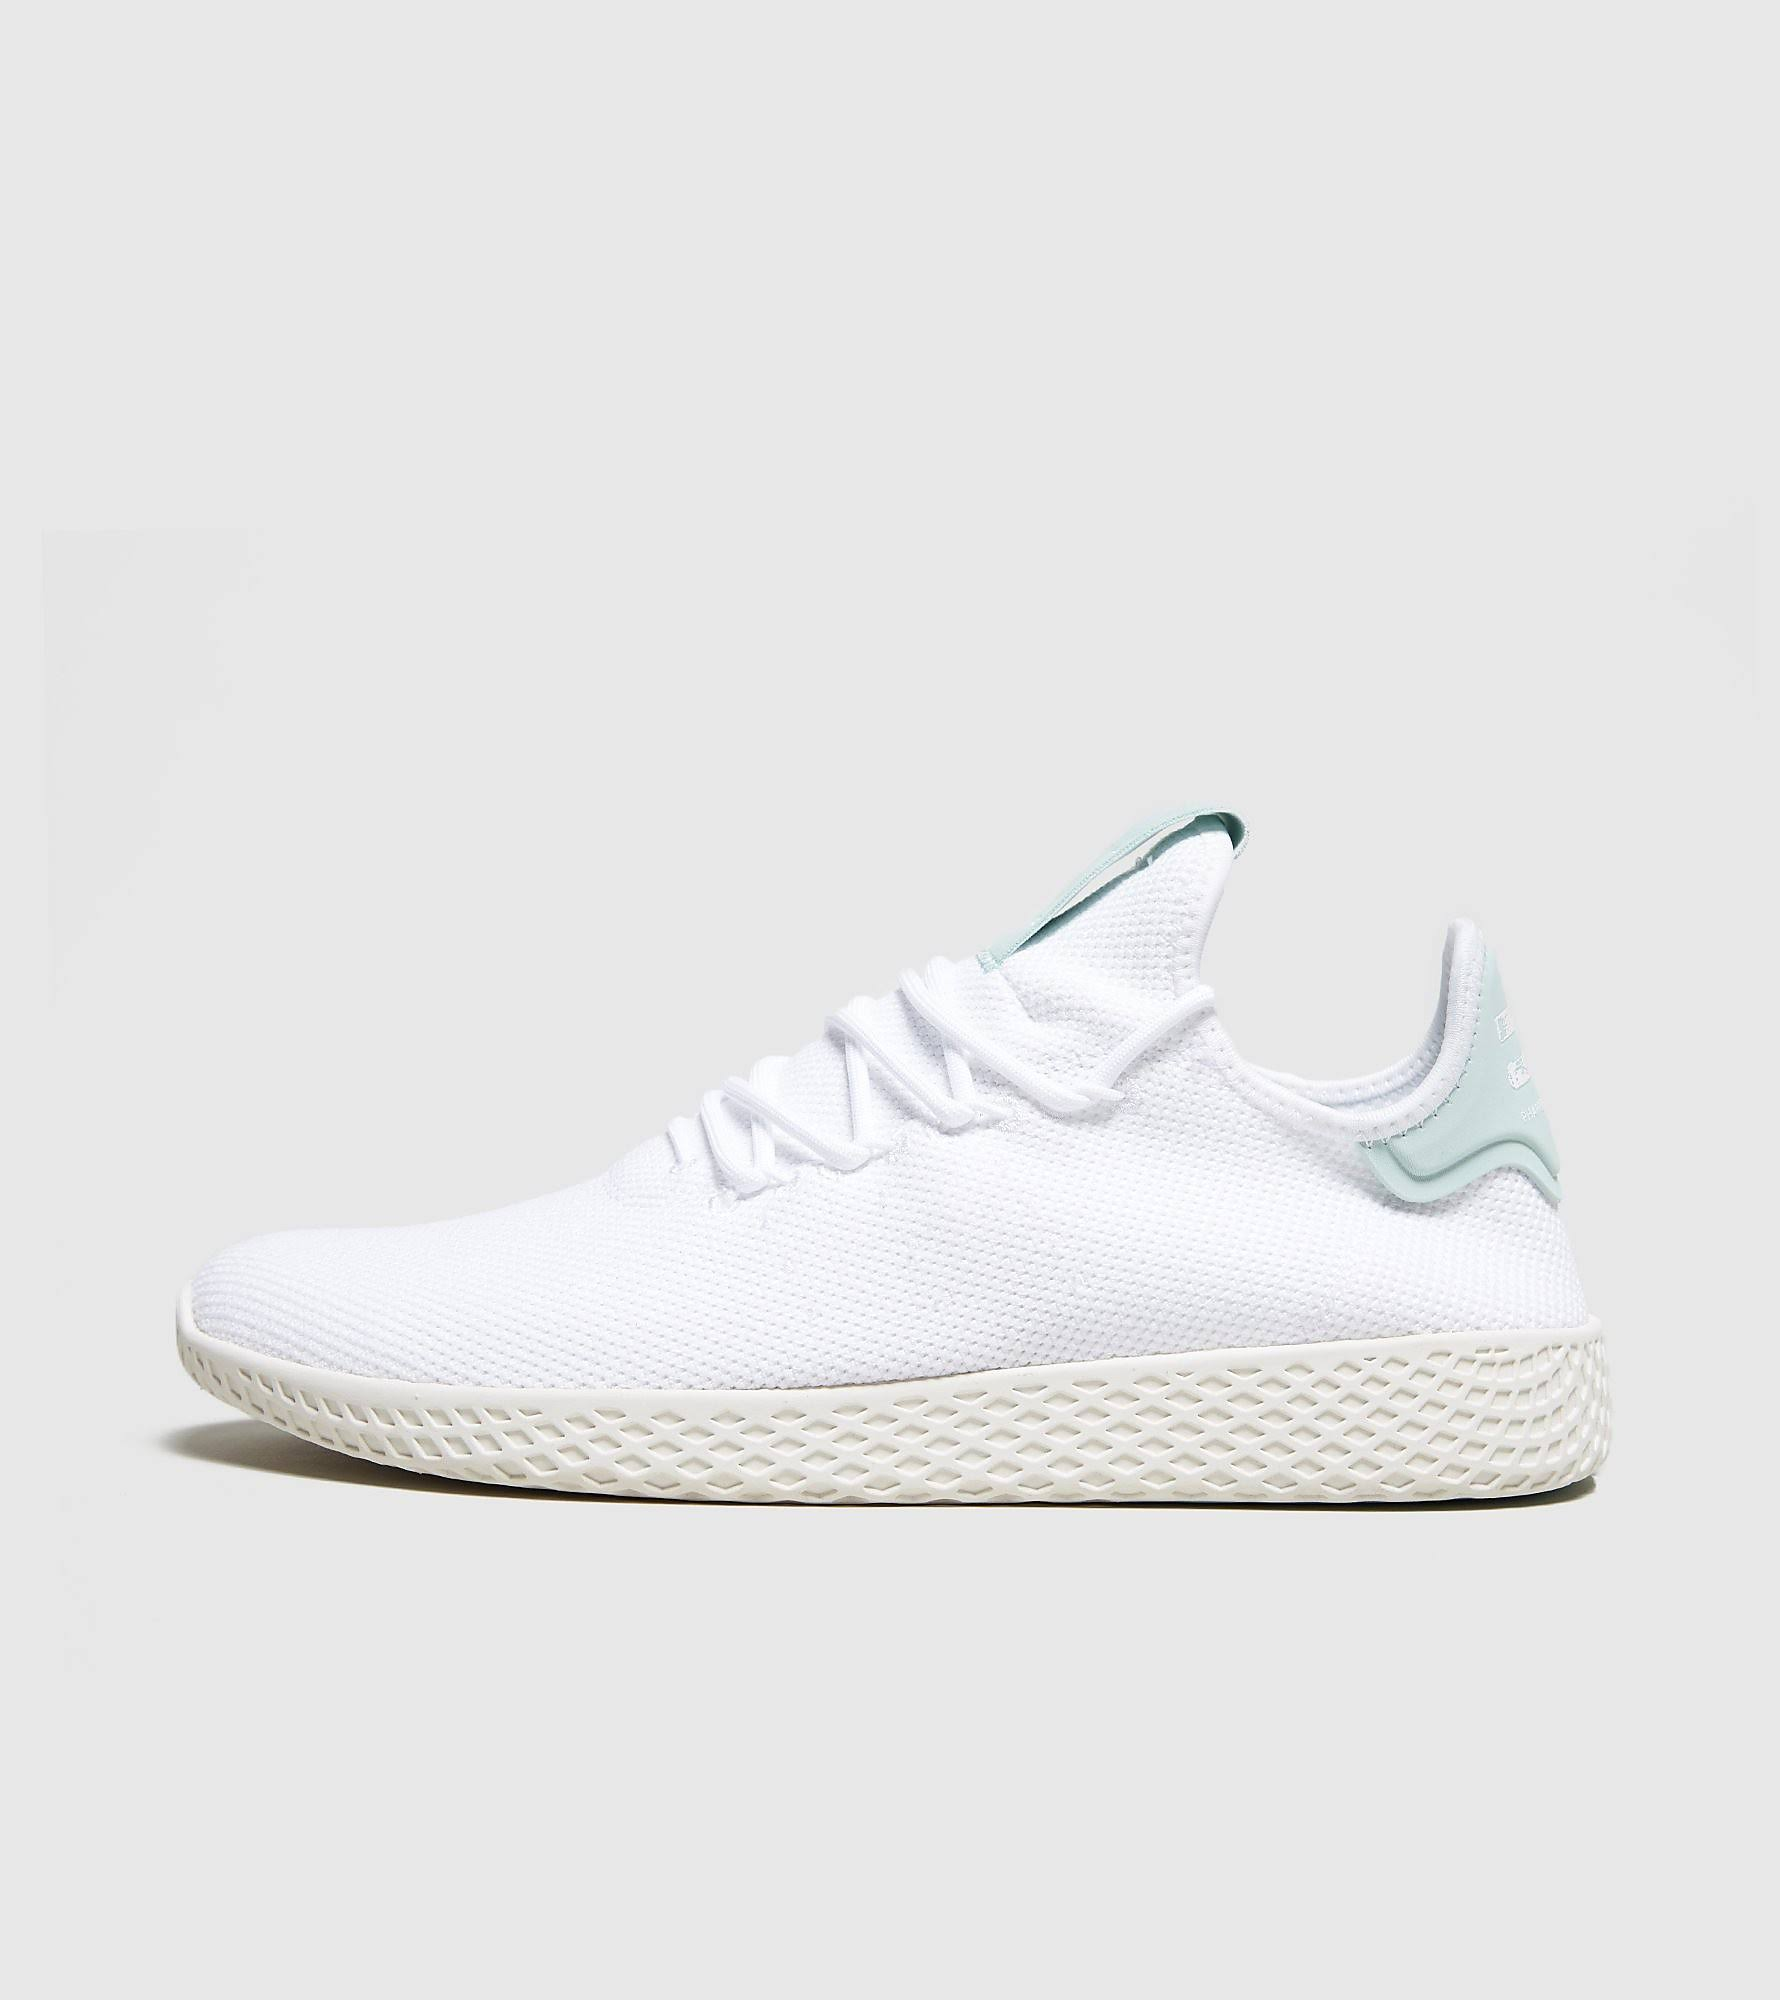 Cq2168 Tenis Blanco Zapatillas Originals Adidas Pharrell En Williams Hu AtTR8qp